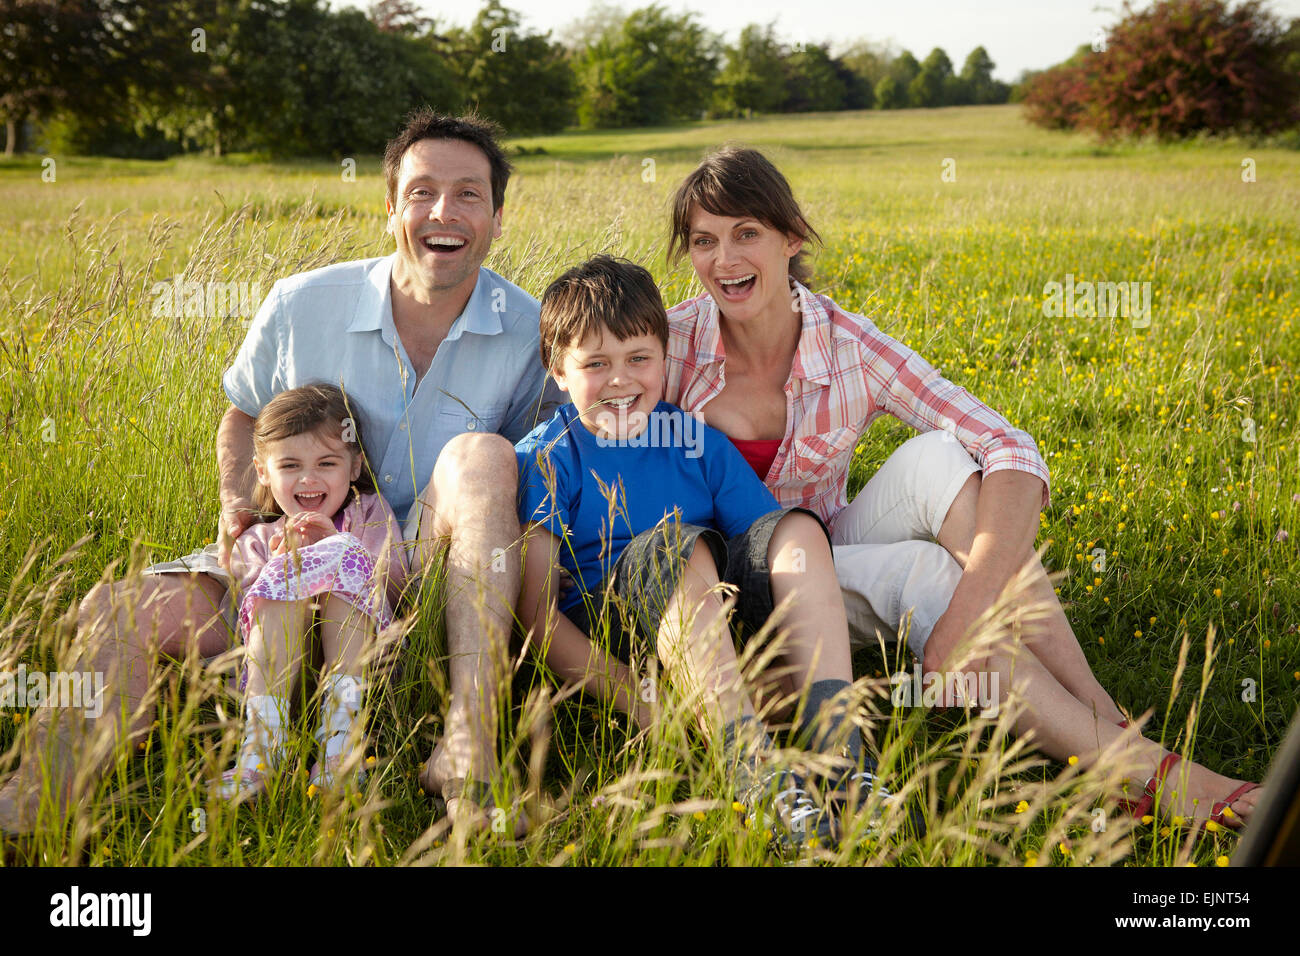 A family, two parents and two children outdoors on a summer evening. Stock Photo